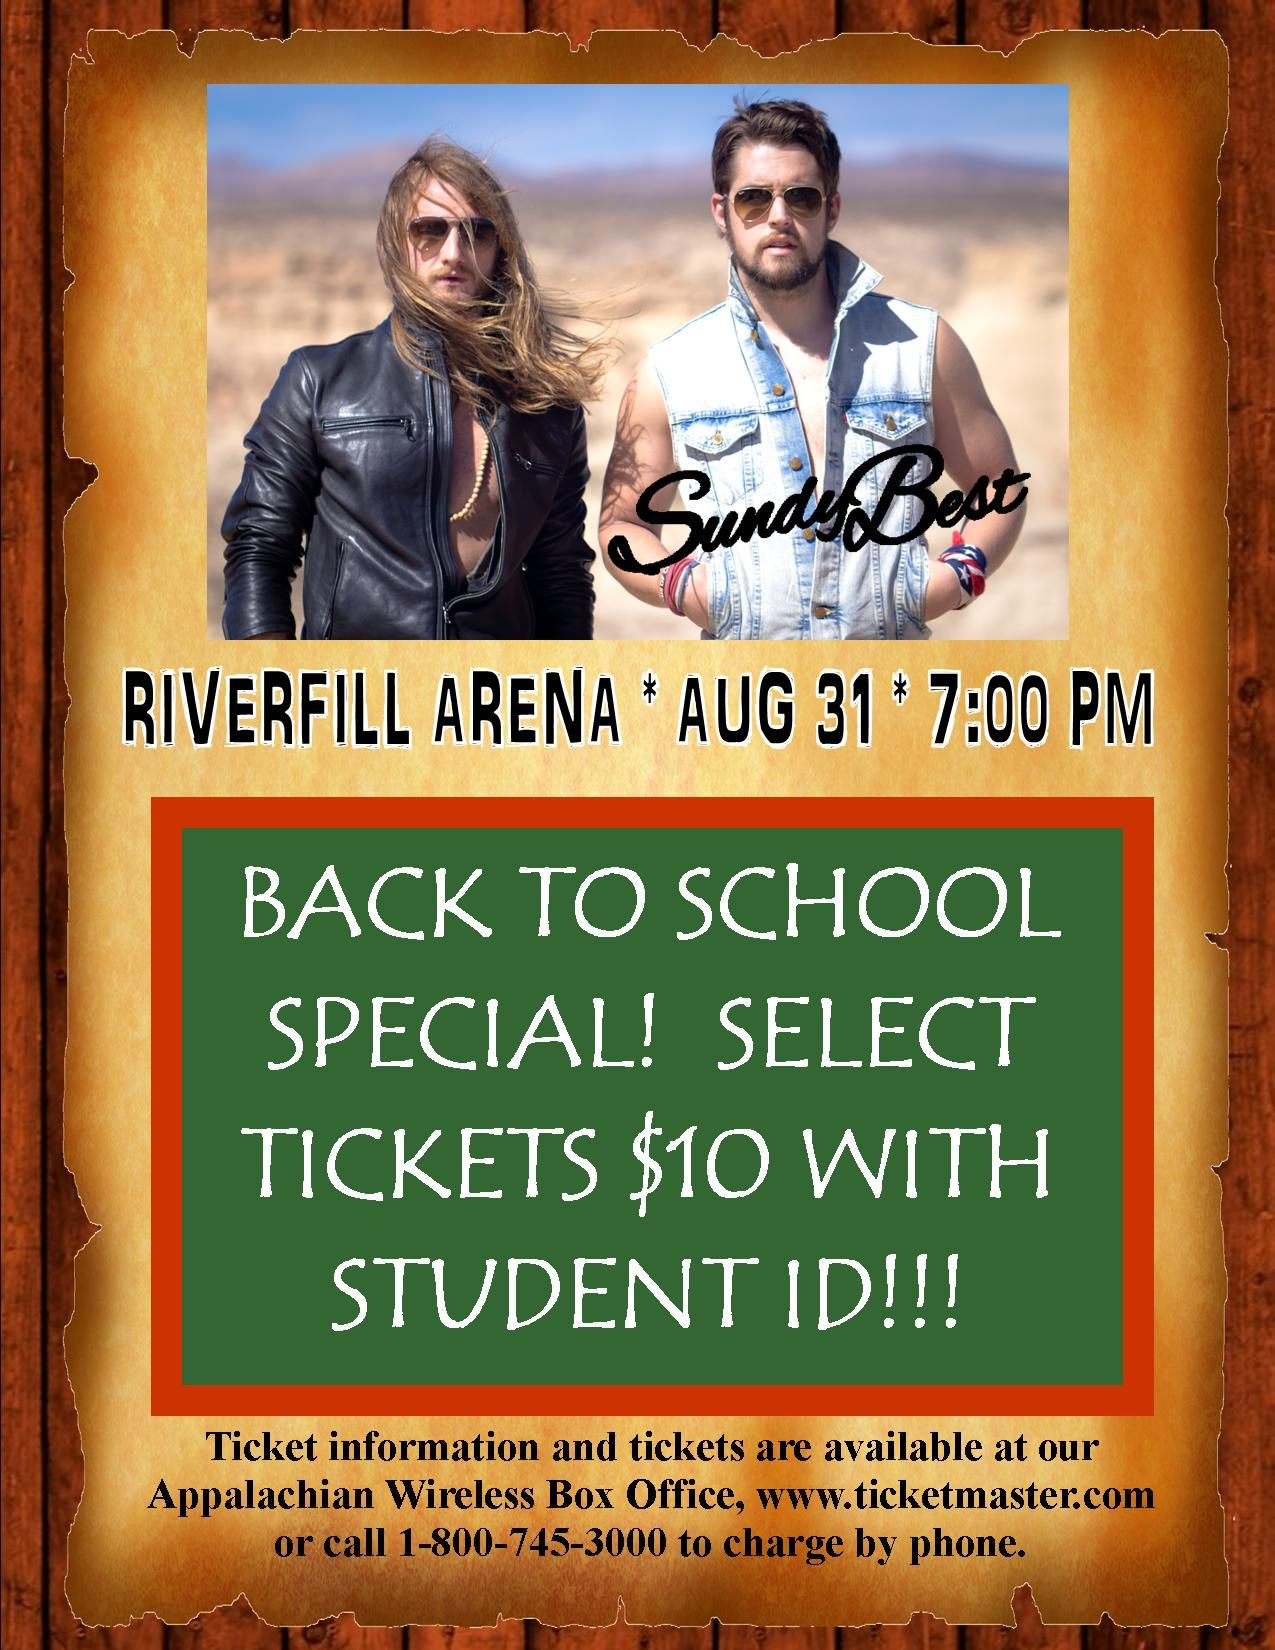 Back to school special!!!  Select Sundy Best tickets are only $10 with a student ID!!!